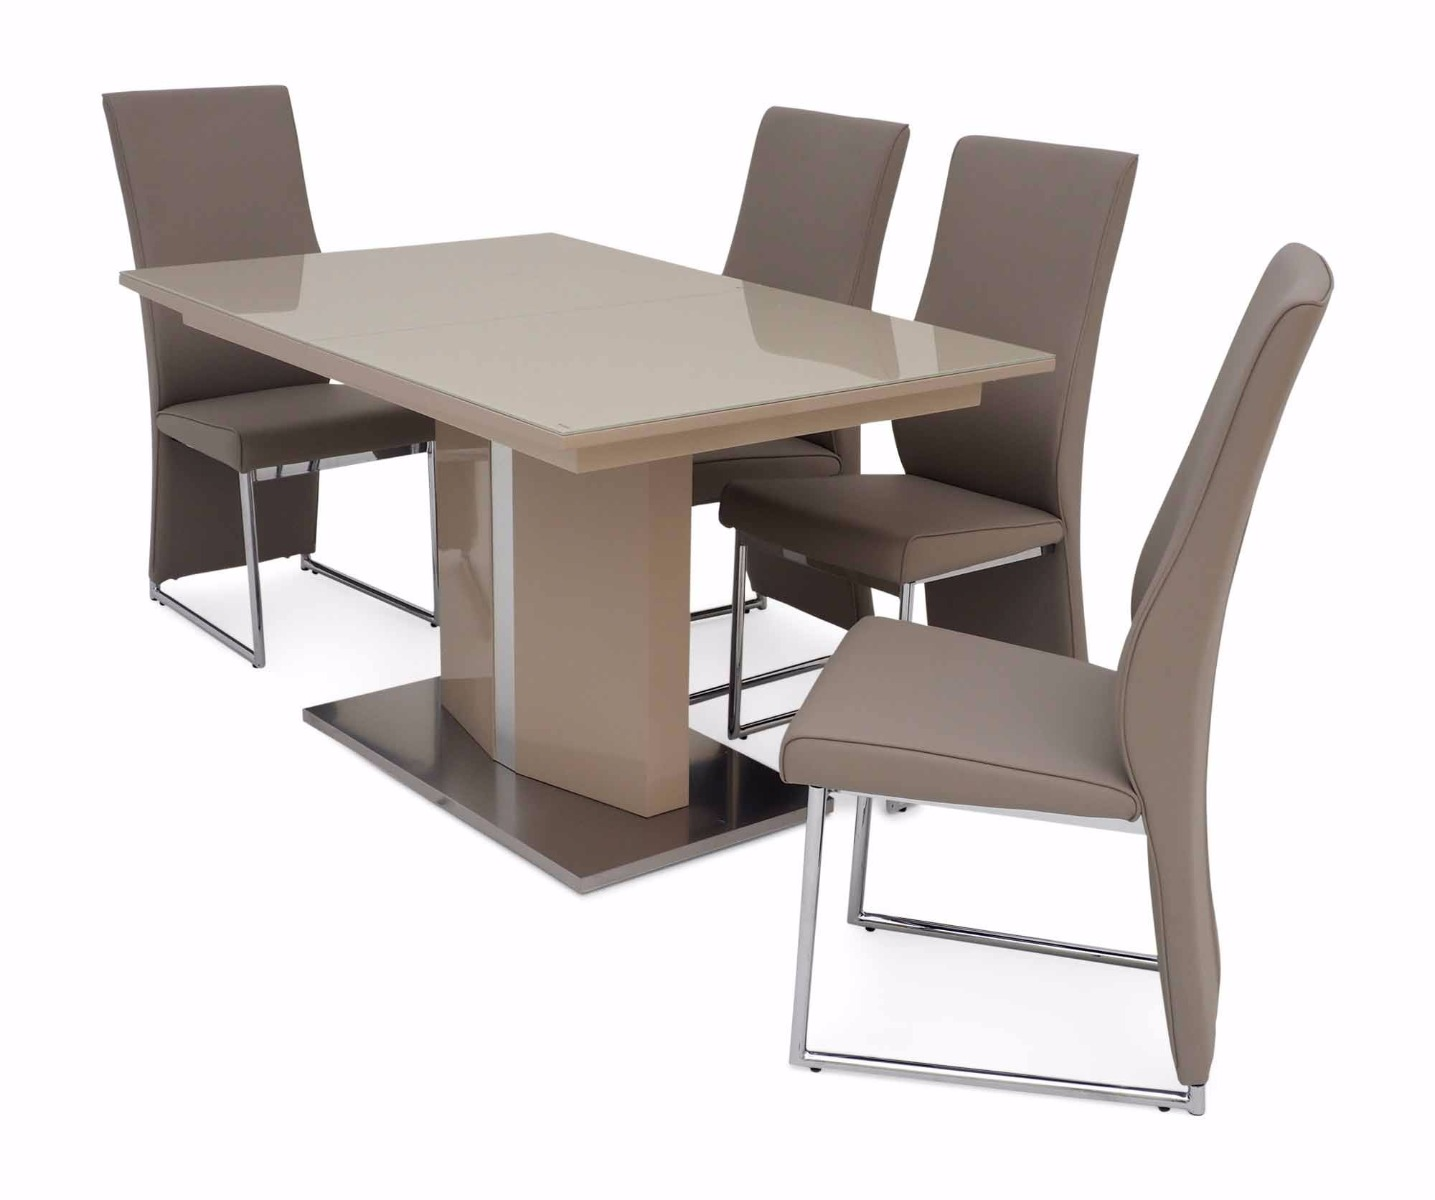 https://www.firstfurniture.co.uk/pub/media/catalog/product/f/a/fairmont_silvio_ext_cream_high_gloss_dining_table_4_remo_black_chairs_2.jpg